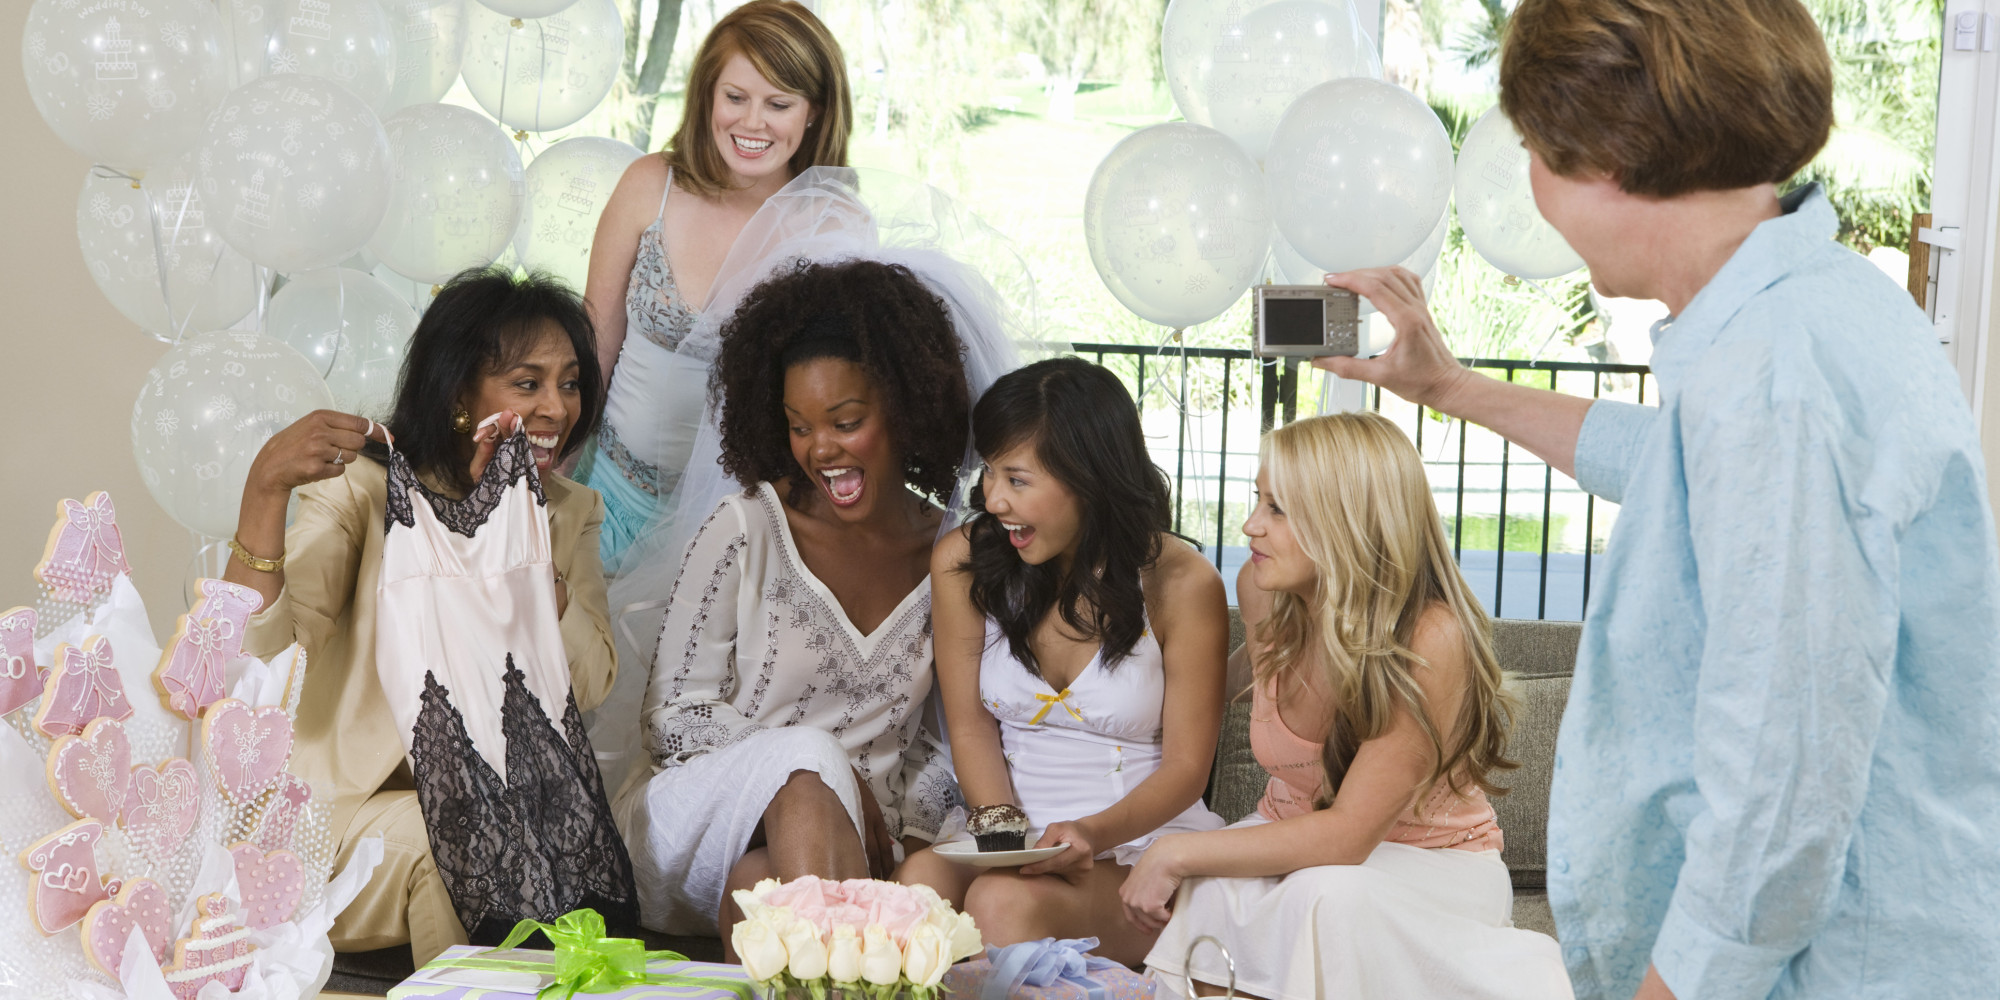 Bridal Shower Gifts That The Bride Will Adore